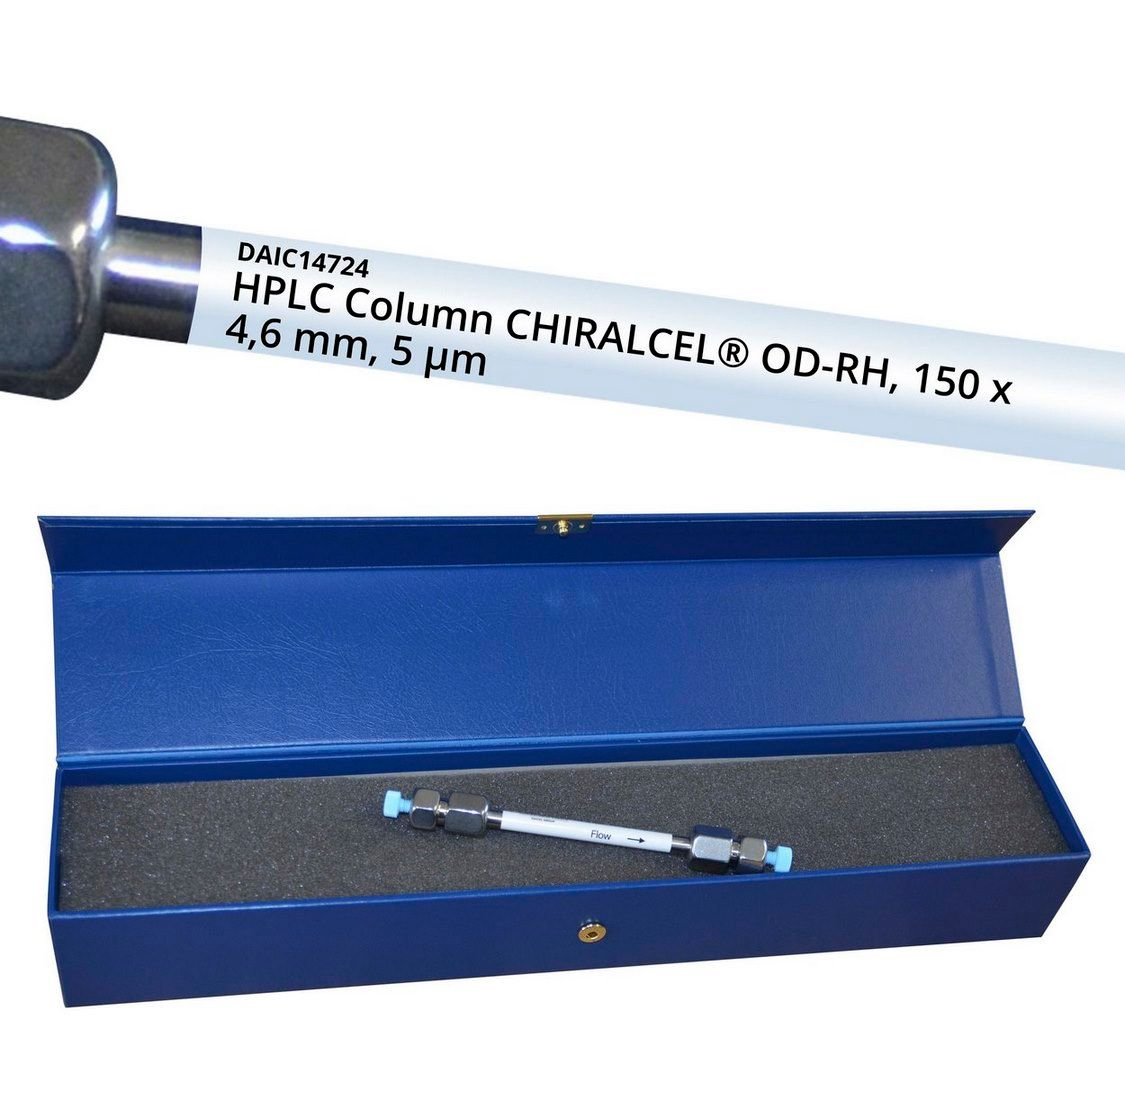 HPLC Column CHIRALCEL® OD-RH, 150 x 4,6 mm, 5 µm